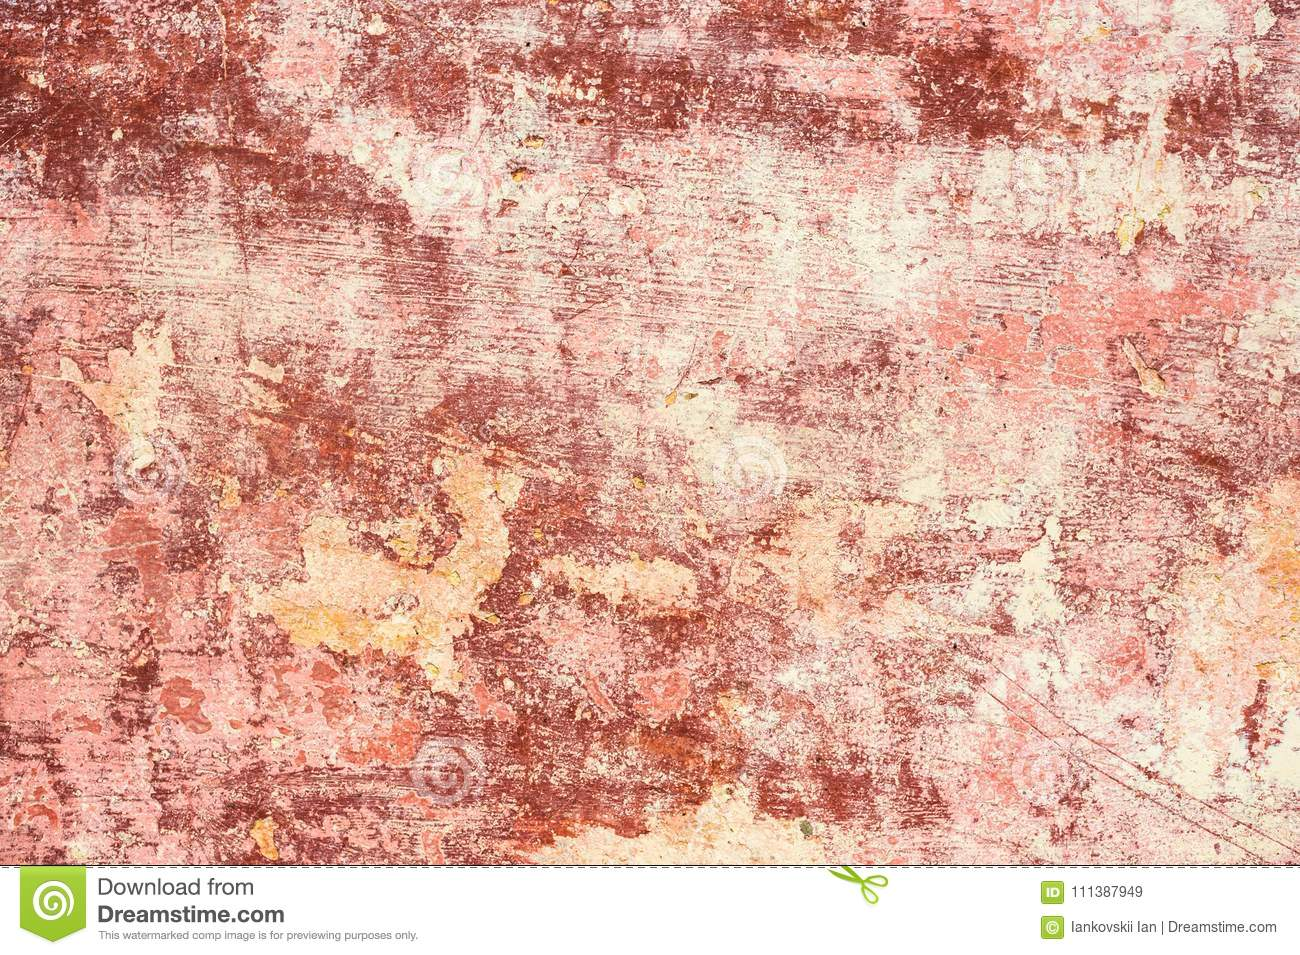 Pink red Textured Background Of Multi layer Flaking Paint On The